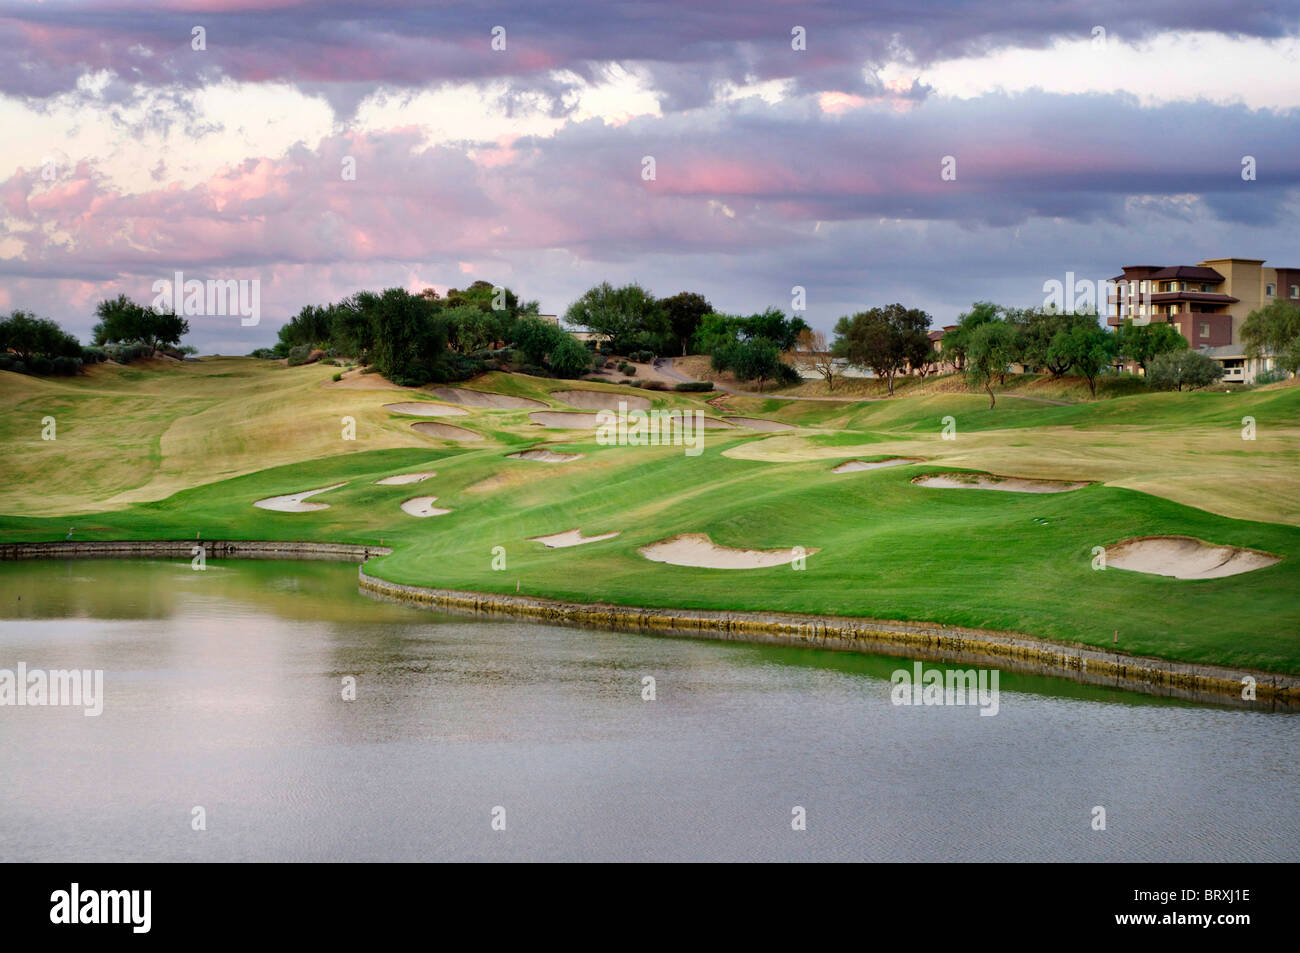 Photo of beautiful golf course with lake in foreground and sunset sky located in Scottsdale,AZ - Stock Image